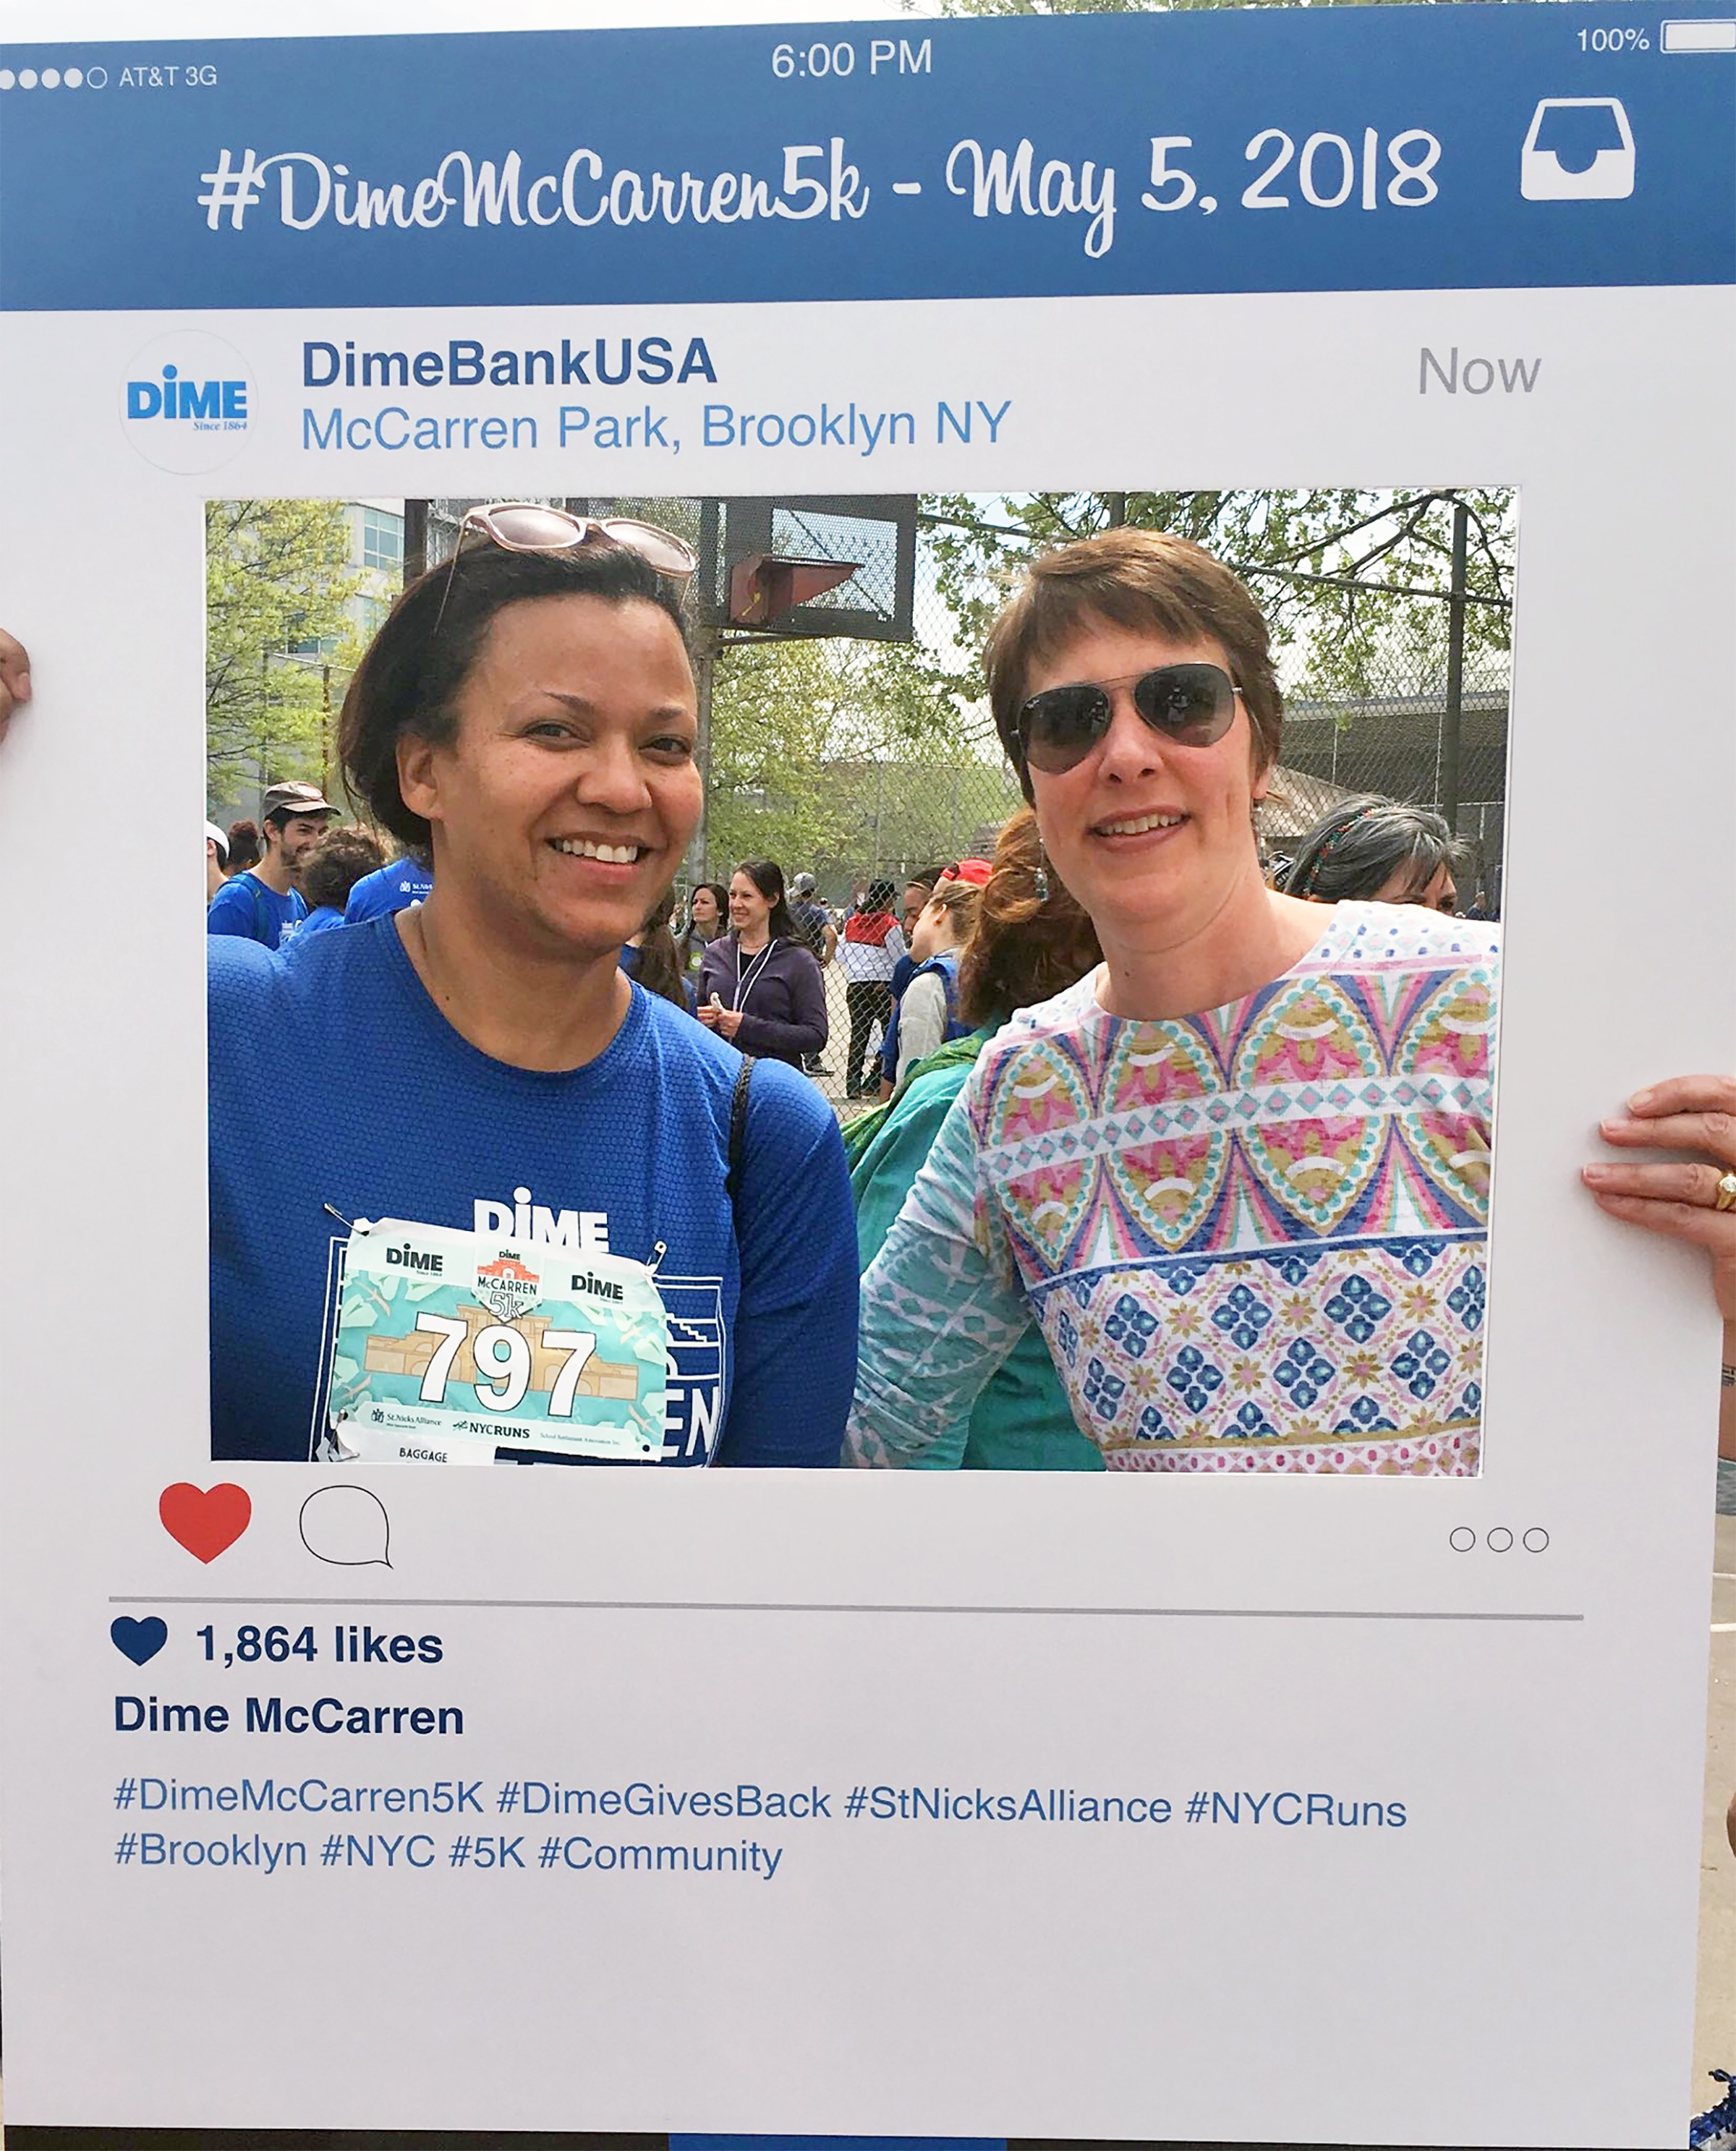 (l to r) Board members Laura James and Lydia Morris came out to support this fundraising run and had some fun posing behind the social media frame!